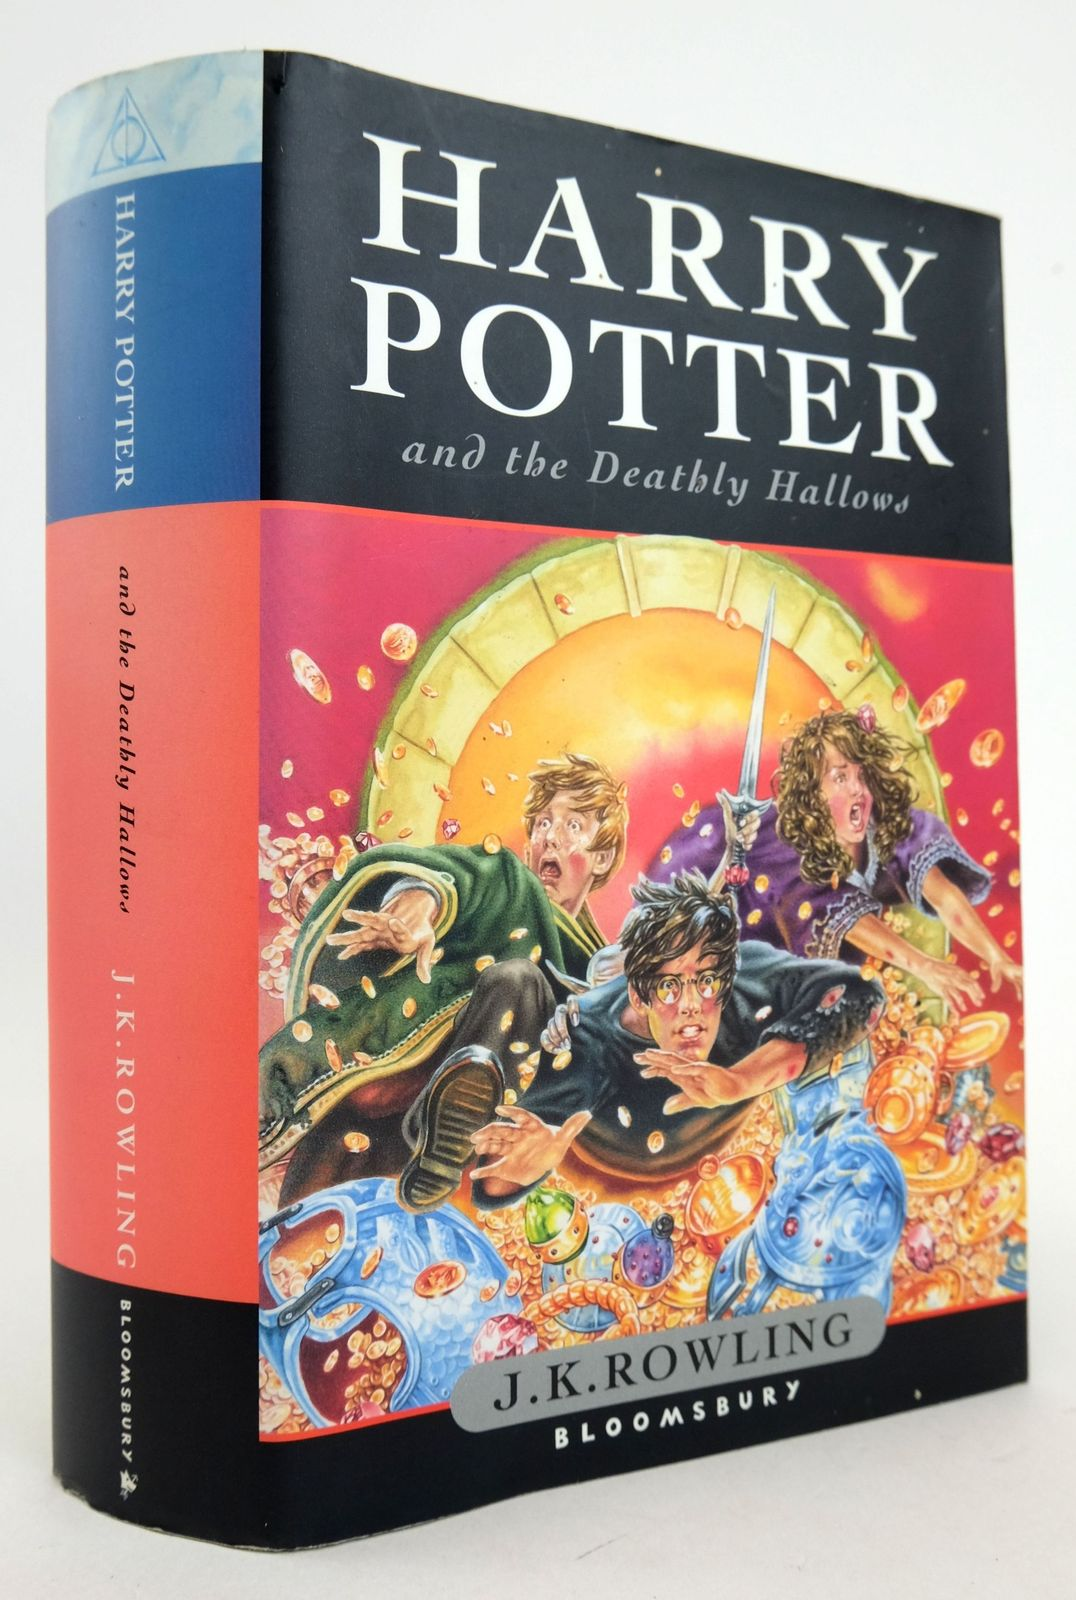 Photo of HARRY POTTER AND THE DEATHLY HALLOWS written by Rowling, J.K. published by Bloomsbury (STOCK CODE: 1819375)  for sale by Stella & Rose's Books